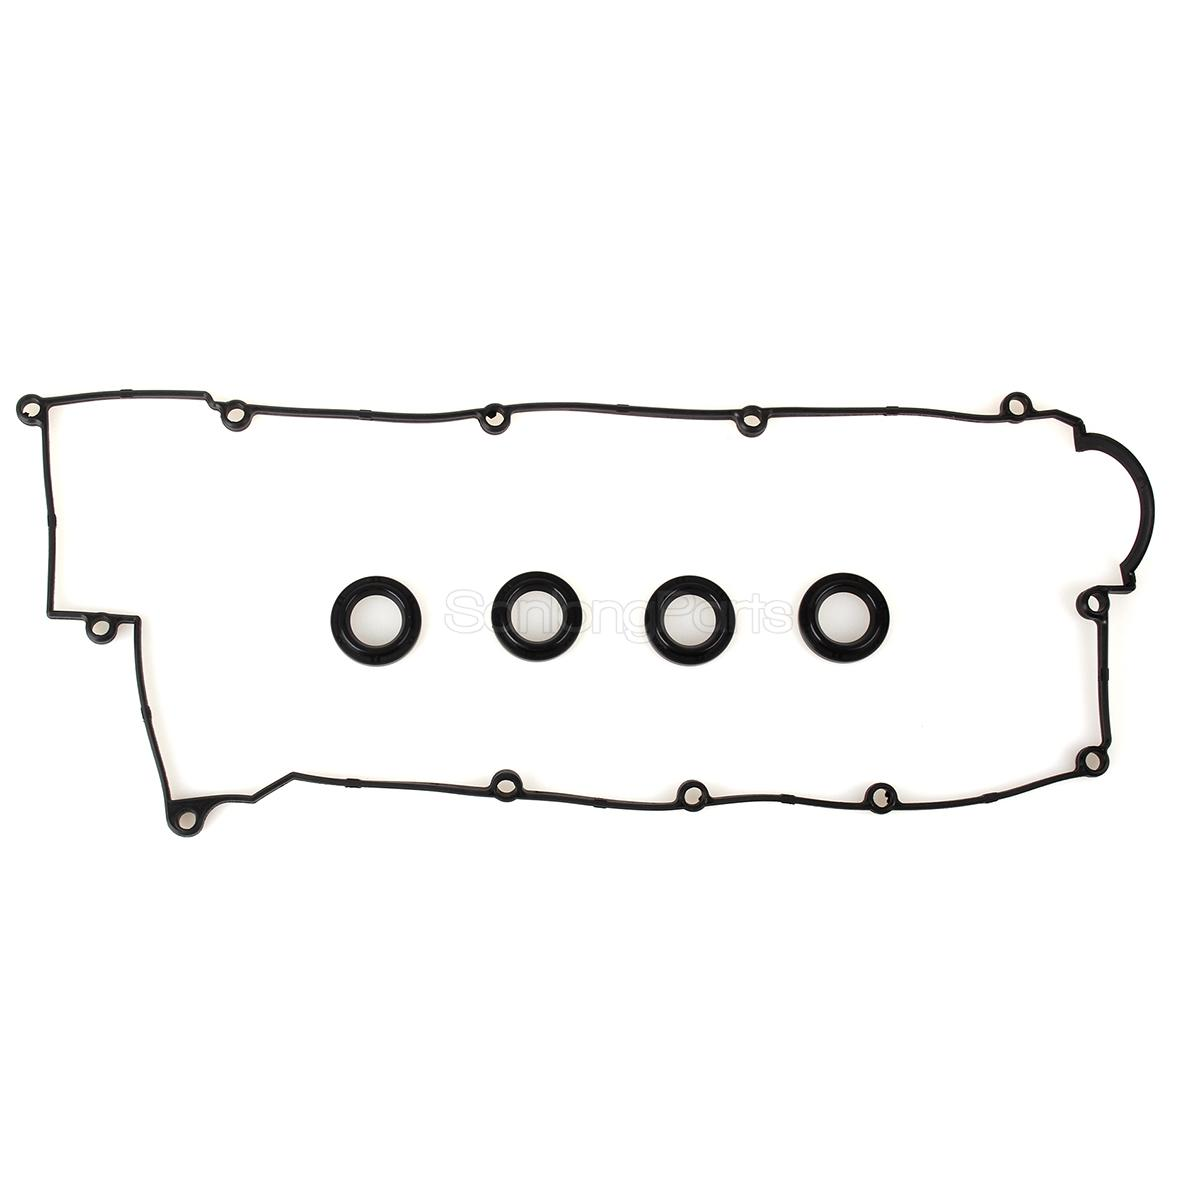 For 03-12 HYUNDAI KIA SPECTRA Cylinder Valve Cover Gasket